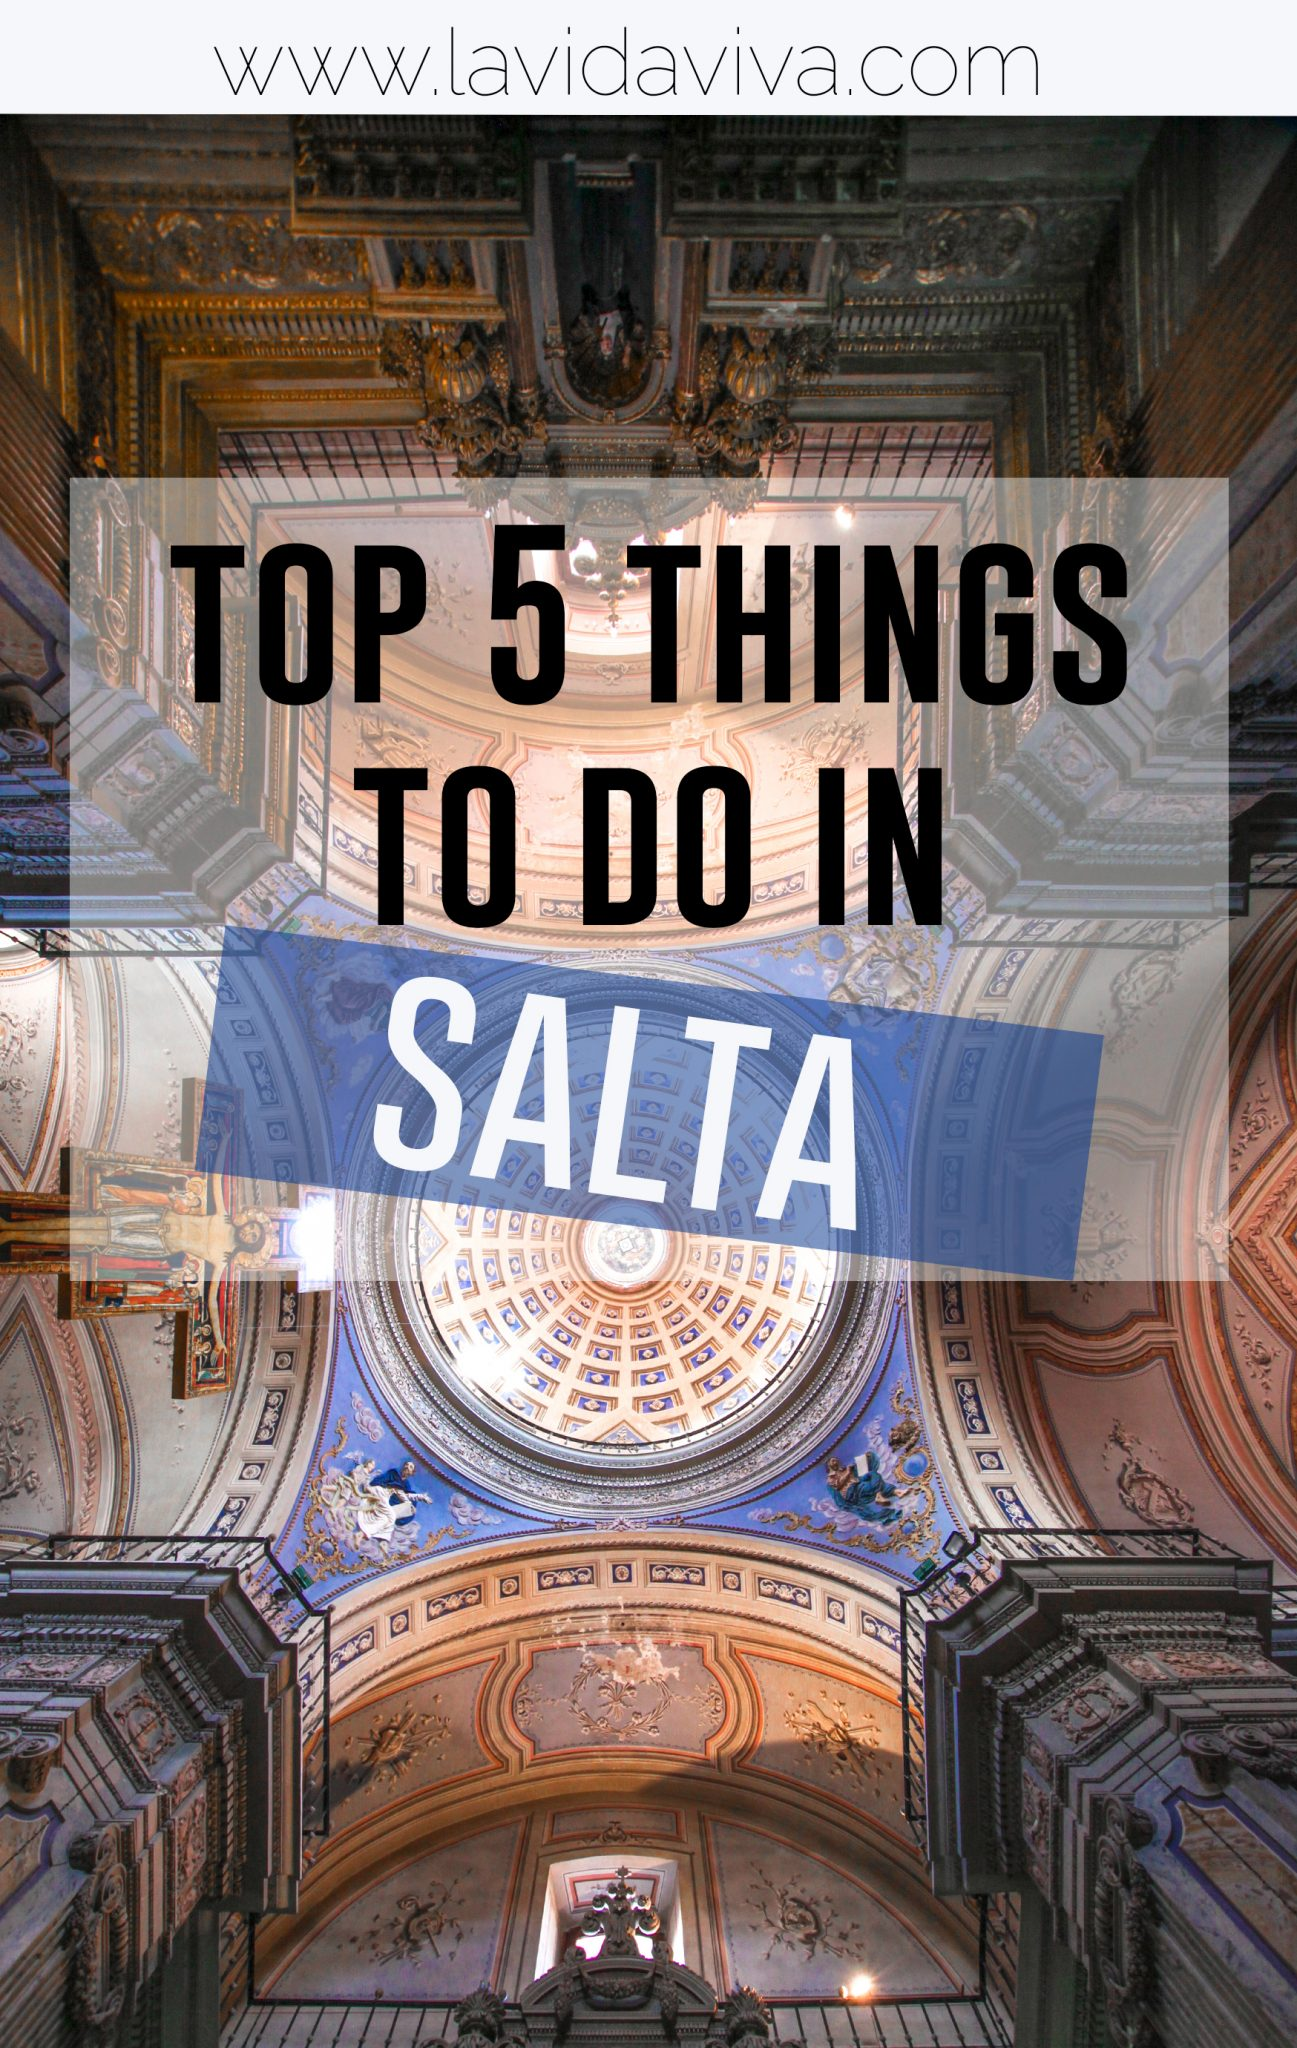 5 Excursiones en Salta | Top 5 Things to do in Salta, Argentina